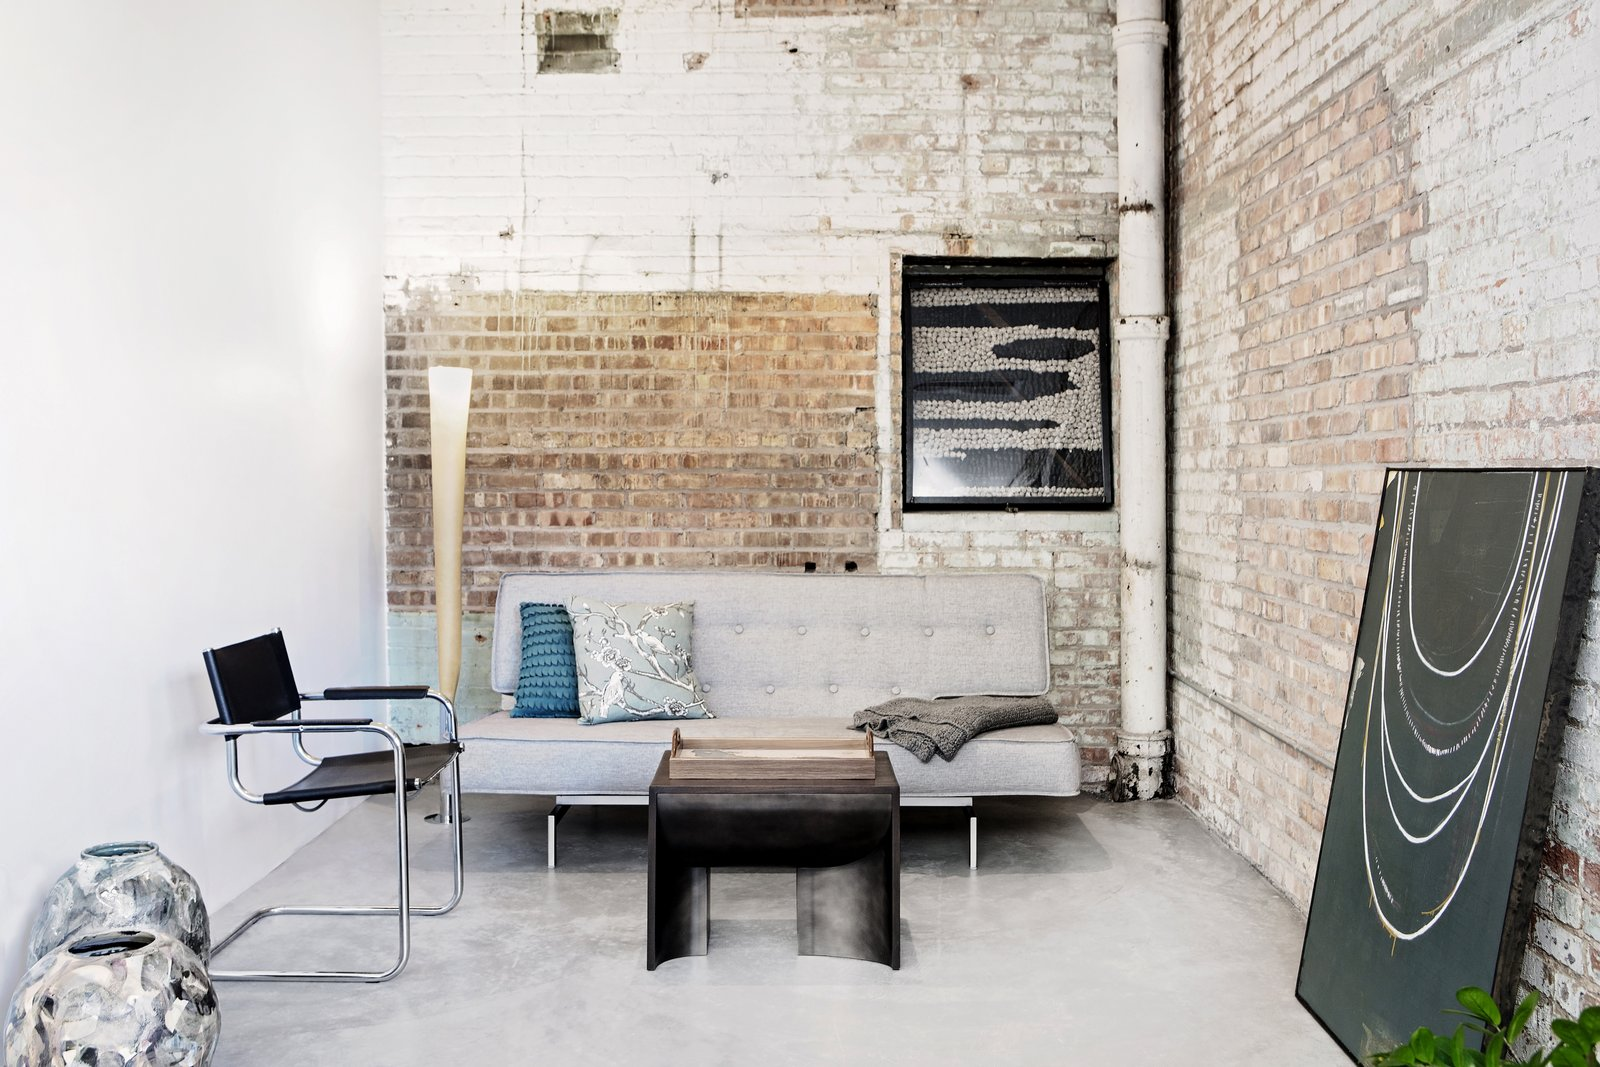 Living Room, Sofa, Coffee Tables, Concrete Floor, Chair, and Floor Lighting A den-like nook with a sofa in the corner.  Photo 17 of 29 in Before & After: A Rundown Bodega in Chicago Is Reimagined Into a Vibrant Live/Work Space